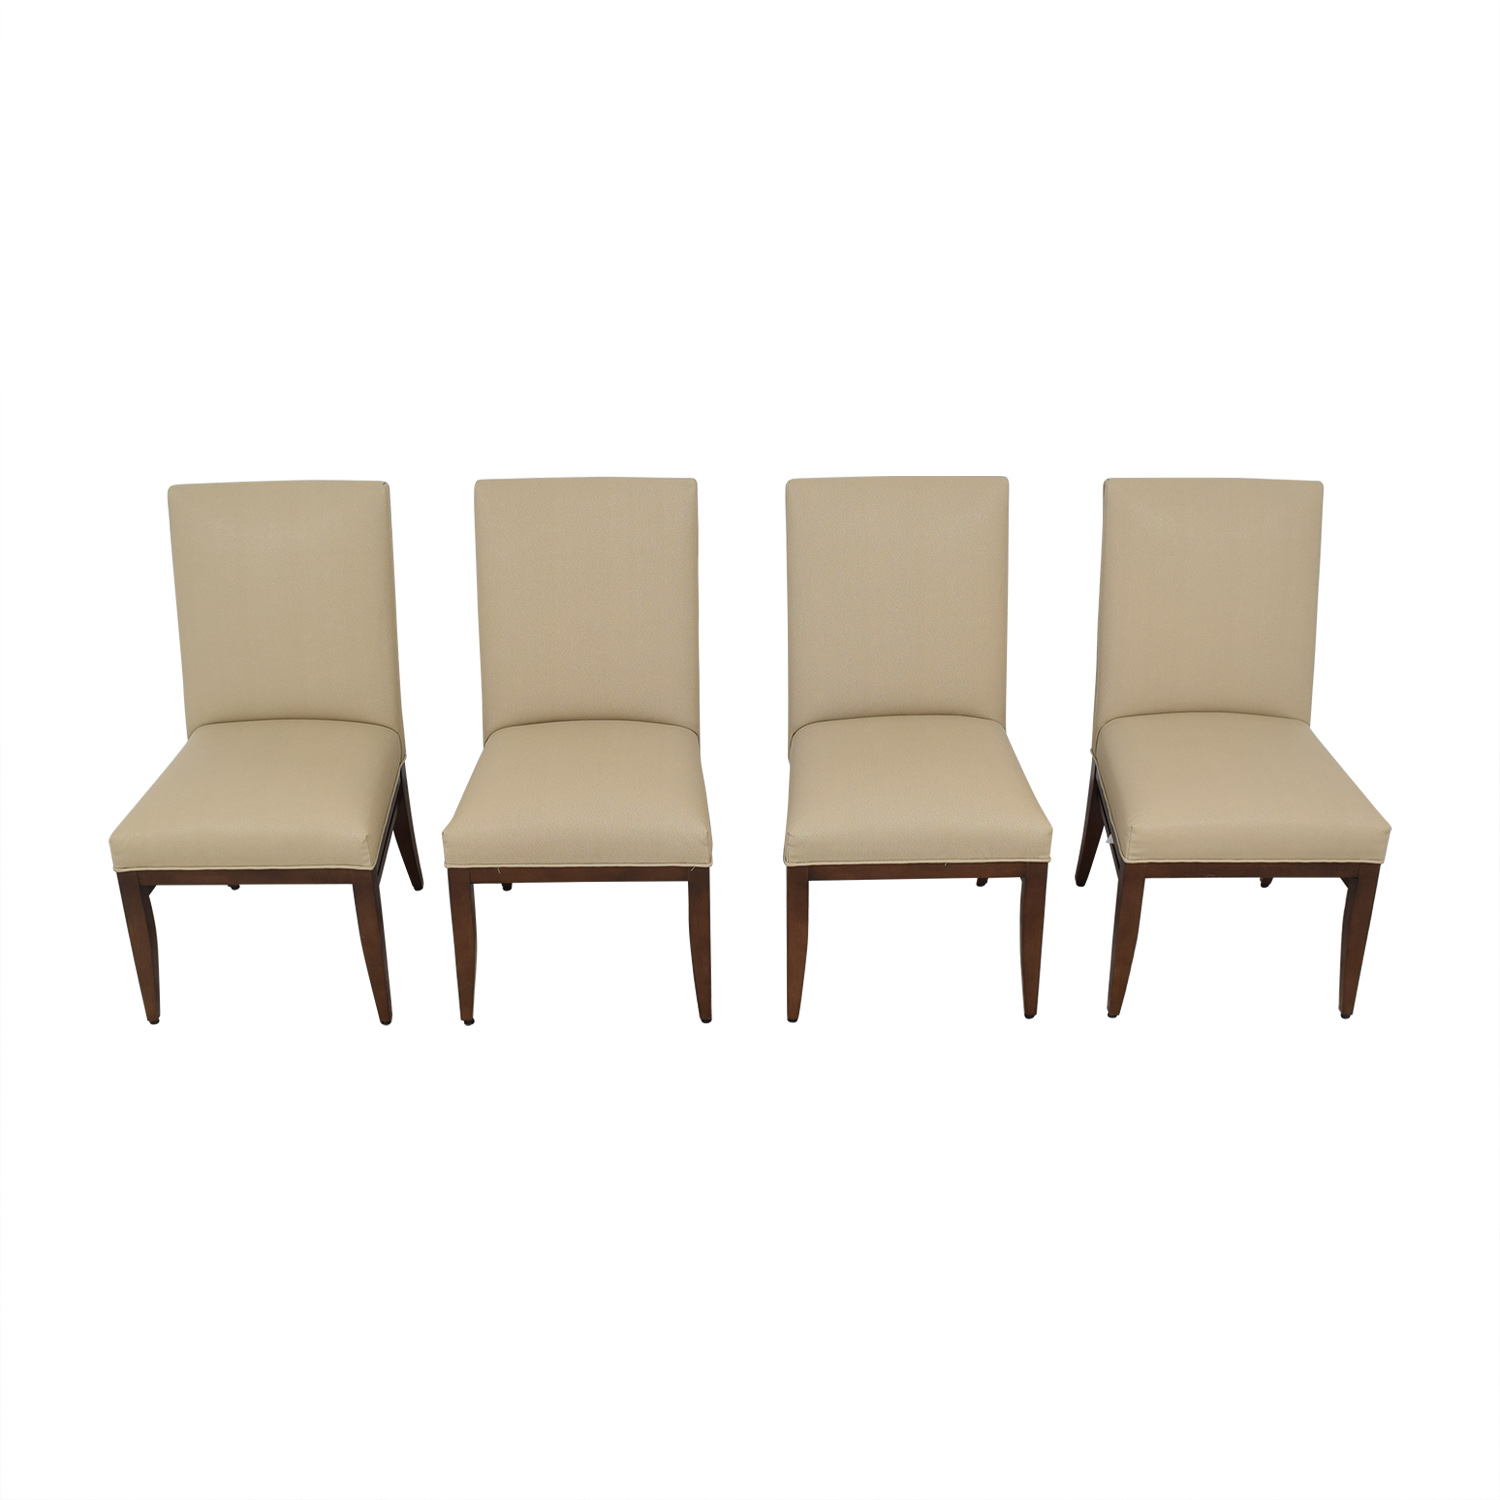 Duralee Kent Upholstered Dining Chairs sale